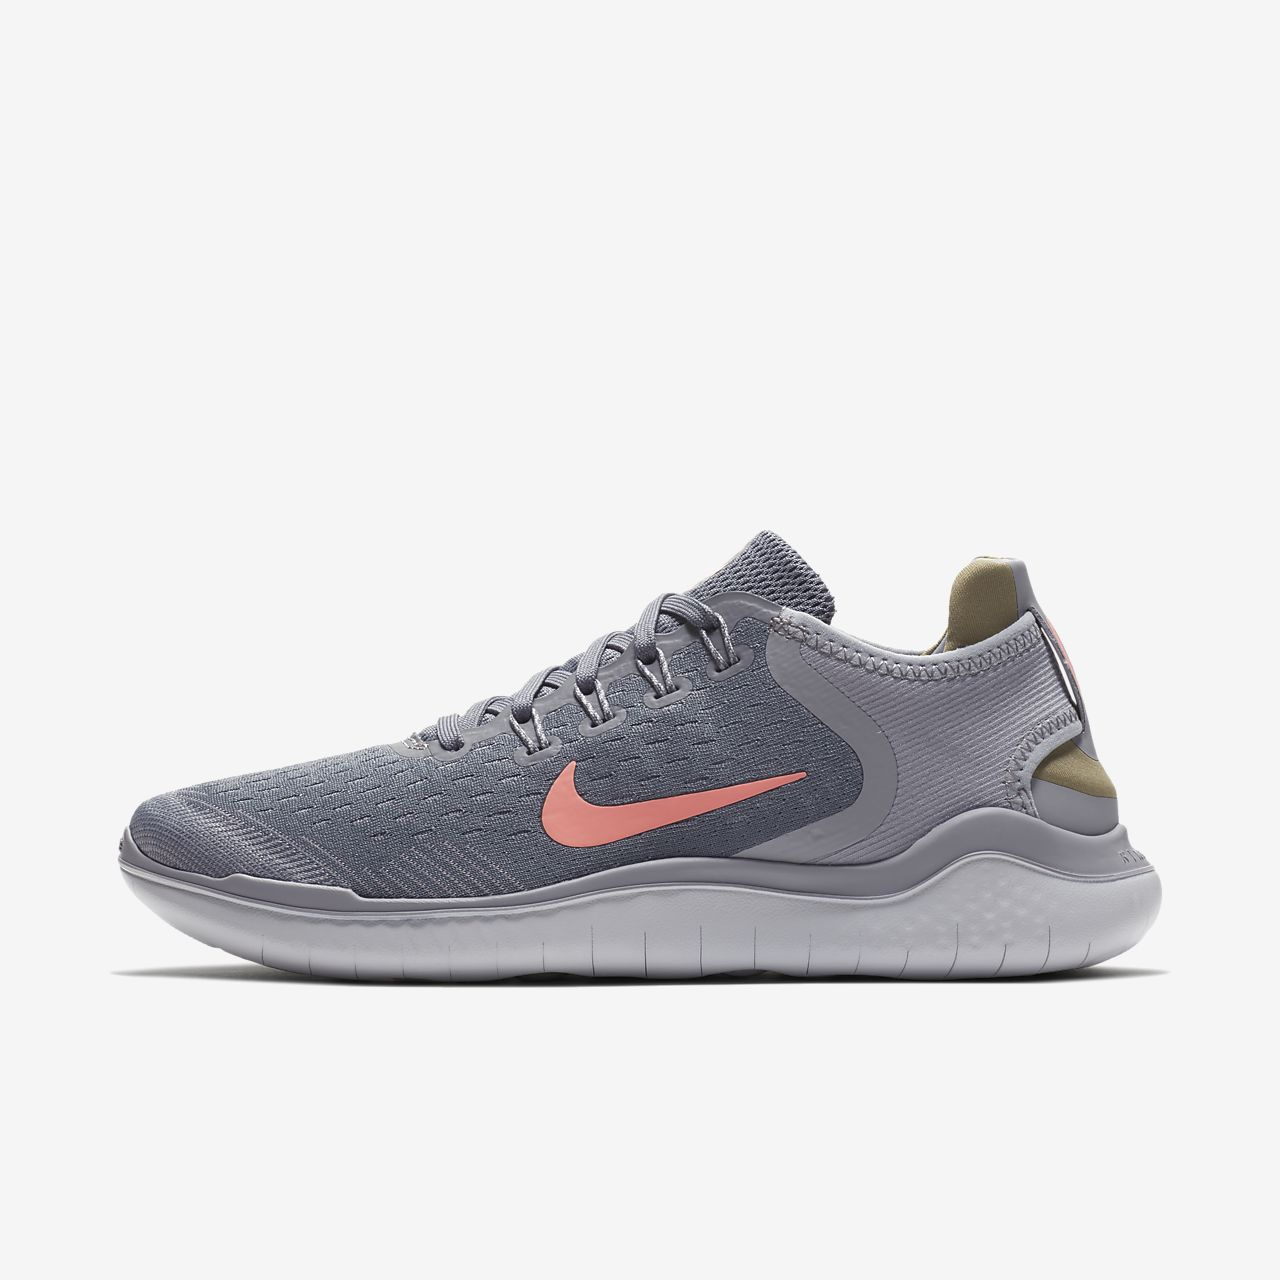 De Nike Rn Pour 2018 Chaussure FemmeBe Running Free 7IYfmb6yvg